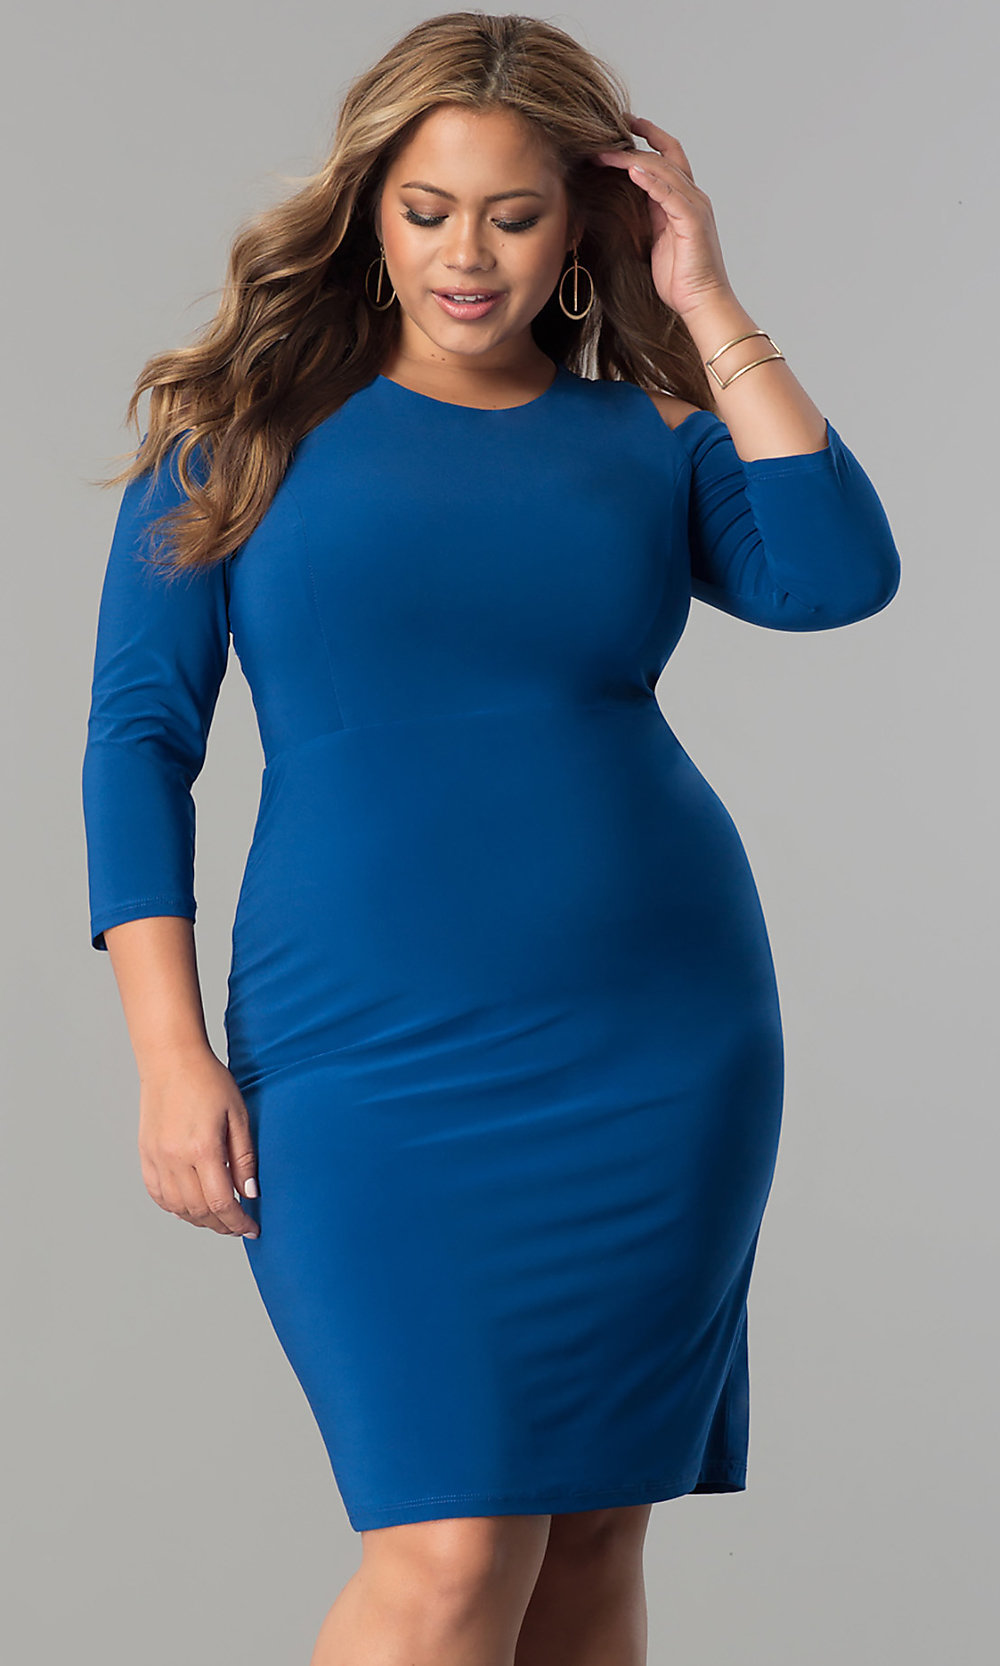 dc0cac82888 ... plus-size 3 4 sleeve cocktail party dress. Style  Tap to expand